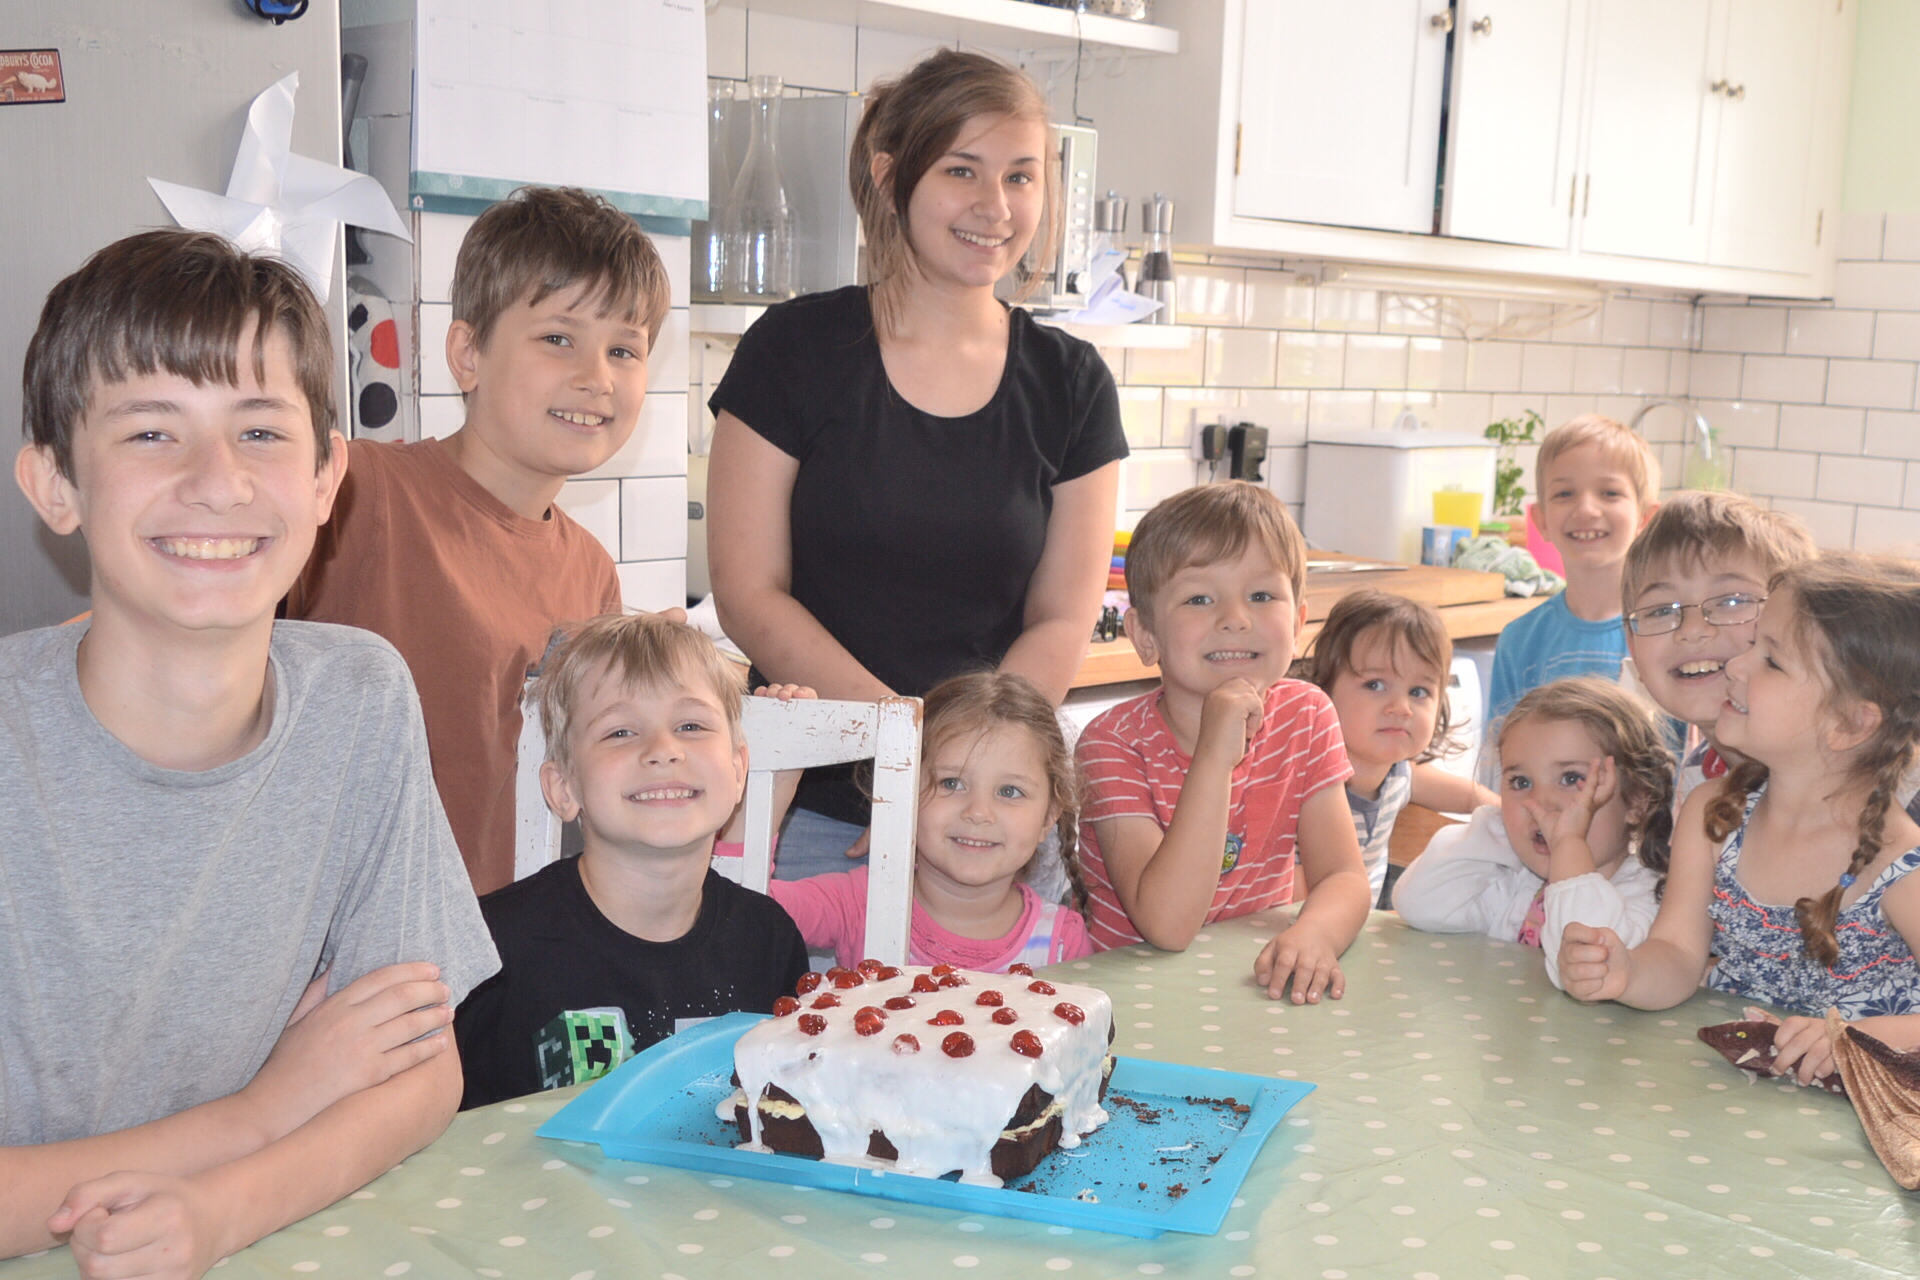 Oliver's 6th birthday with his Minecraft cake and siblings